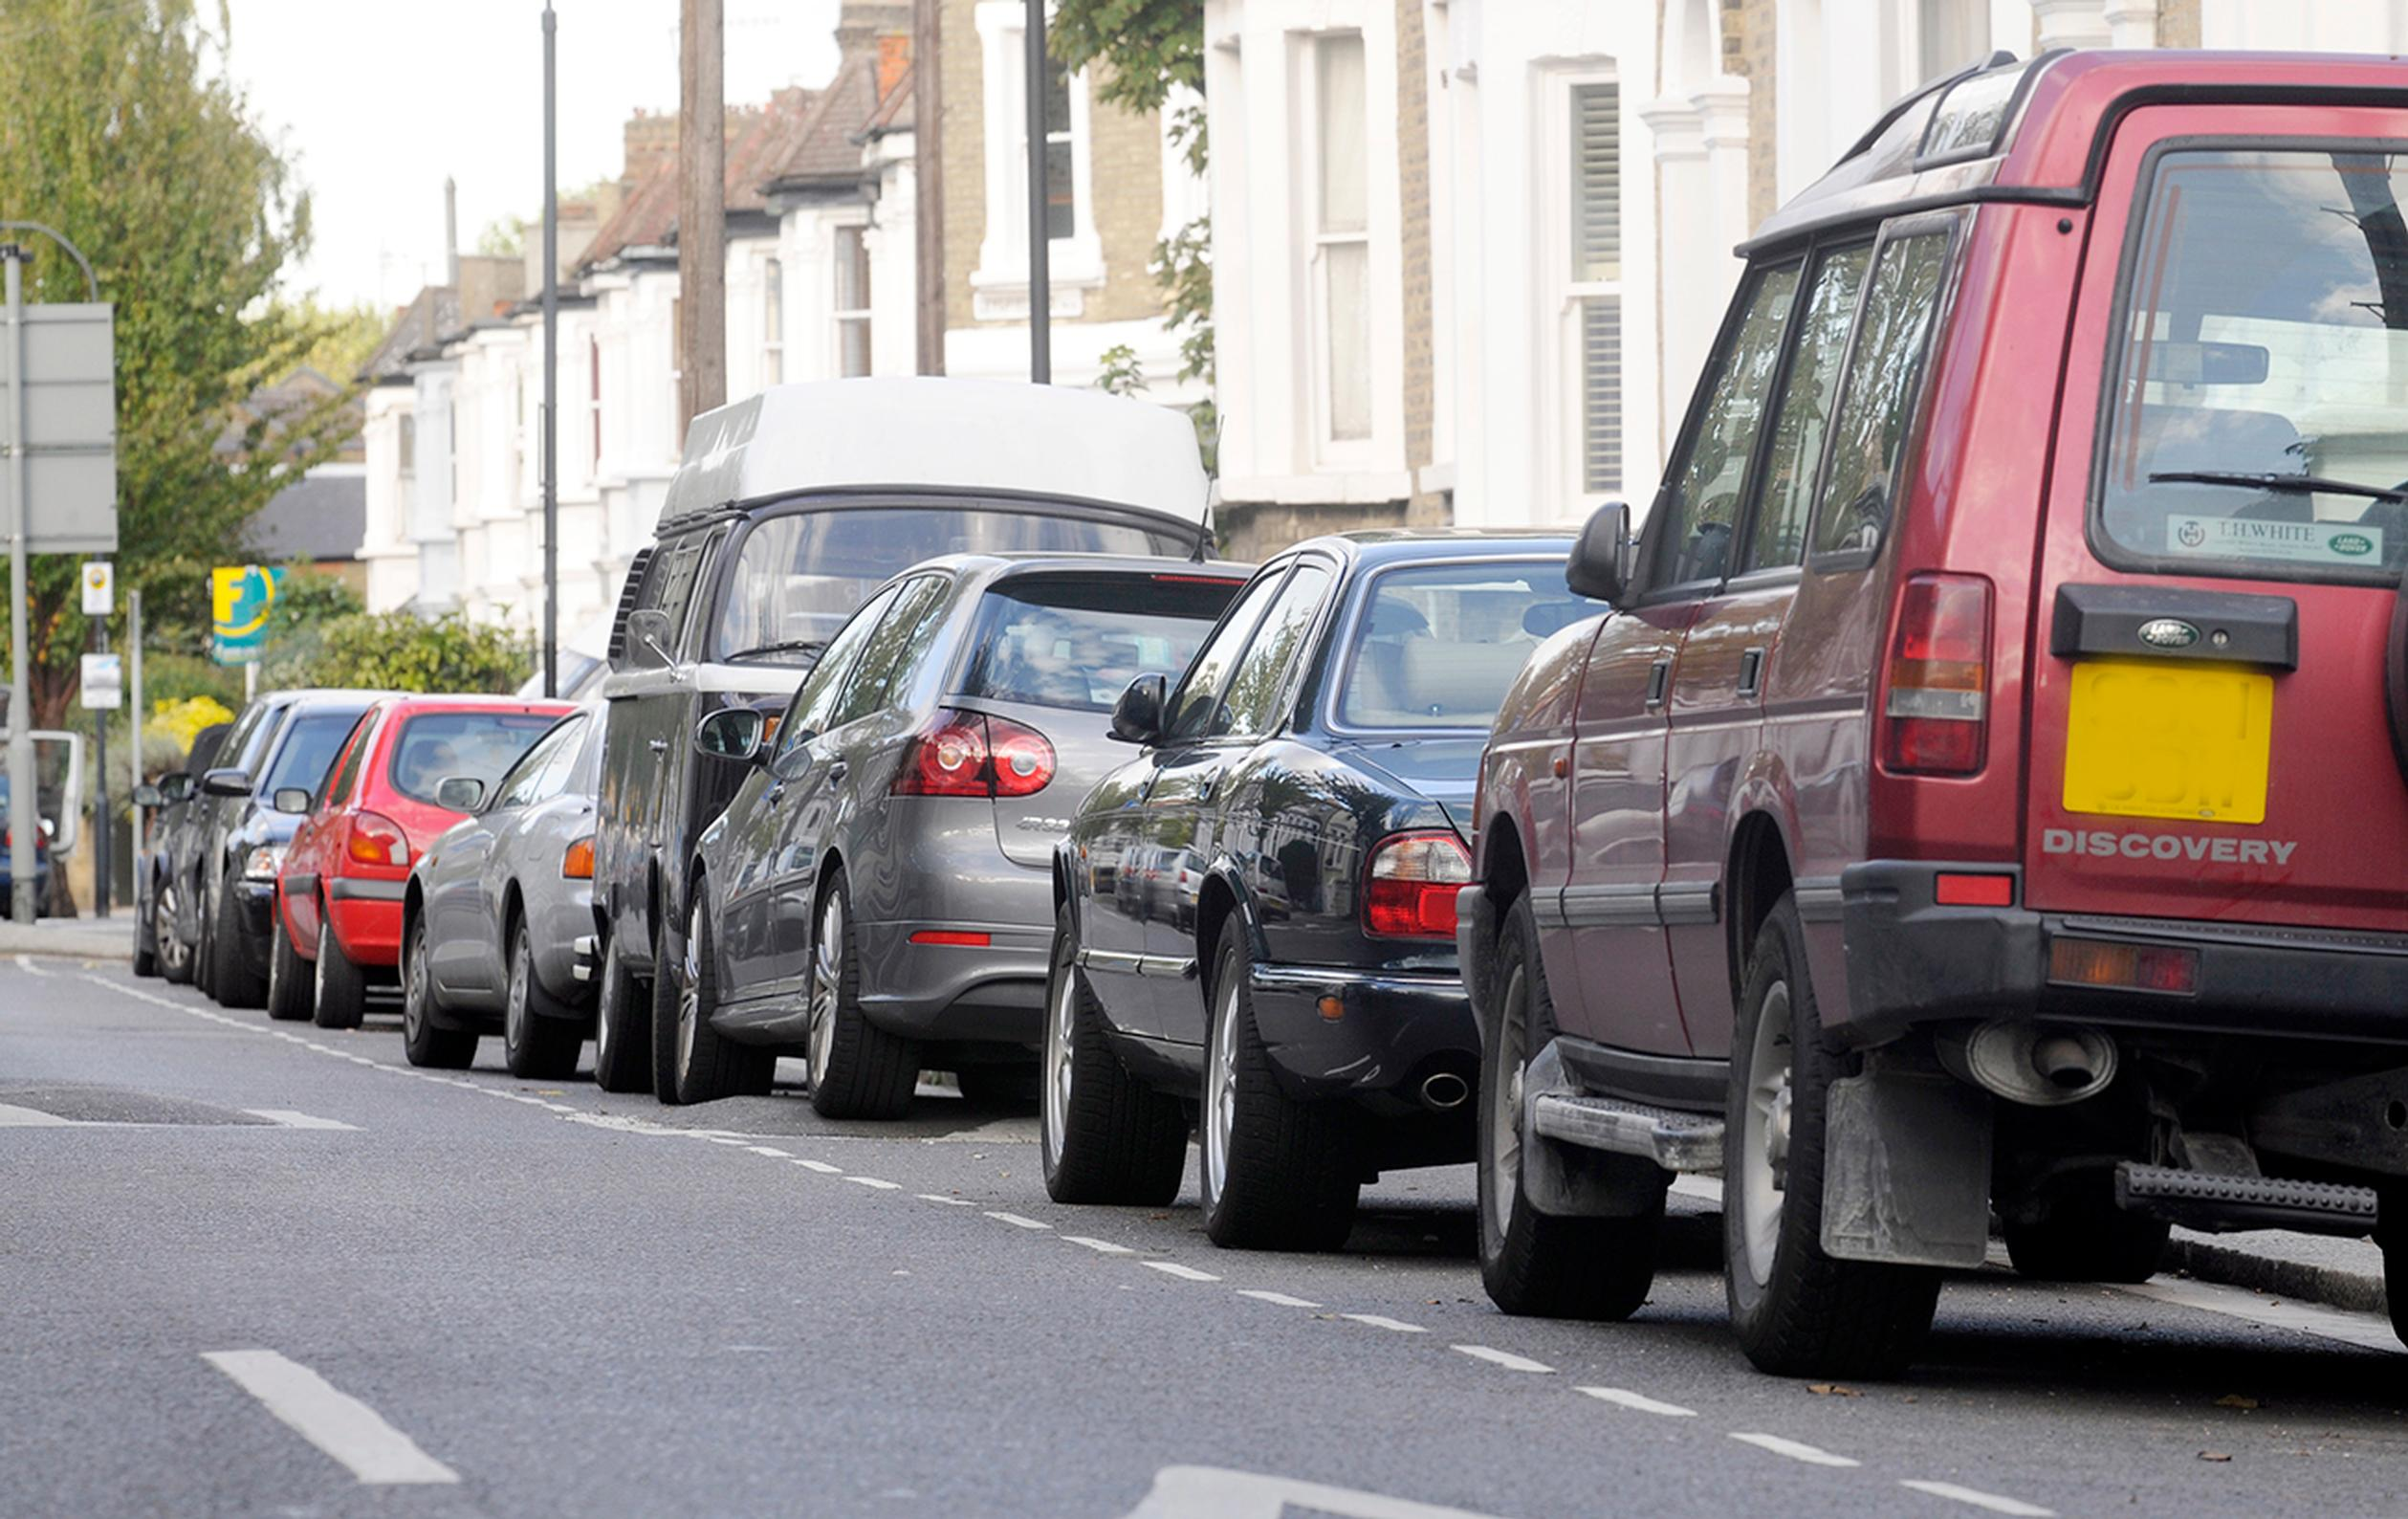 With Londoners staying at home there is increased parking in residential areas